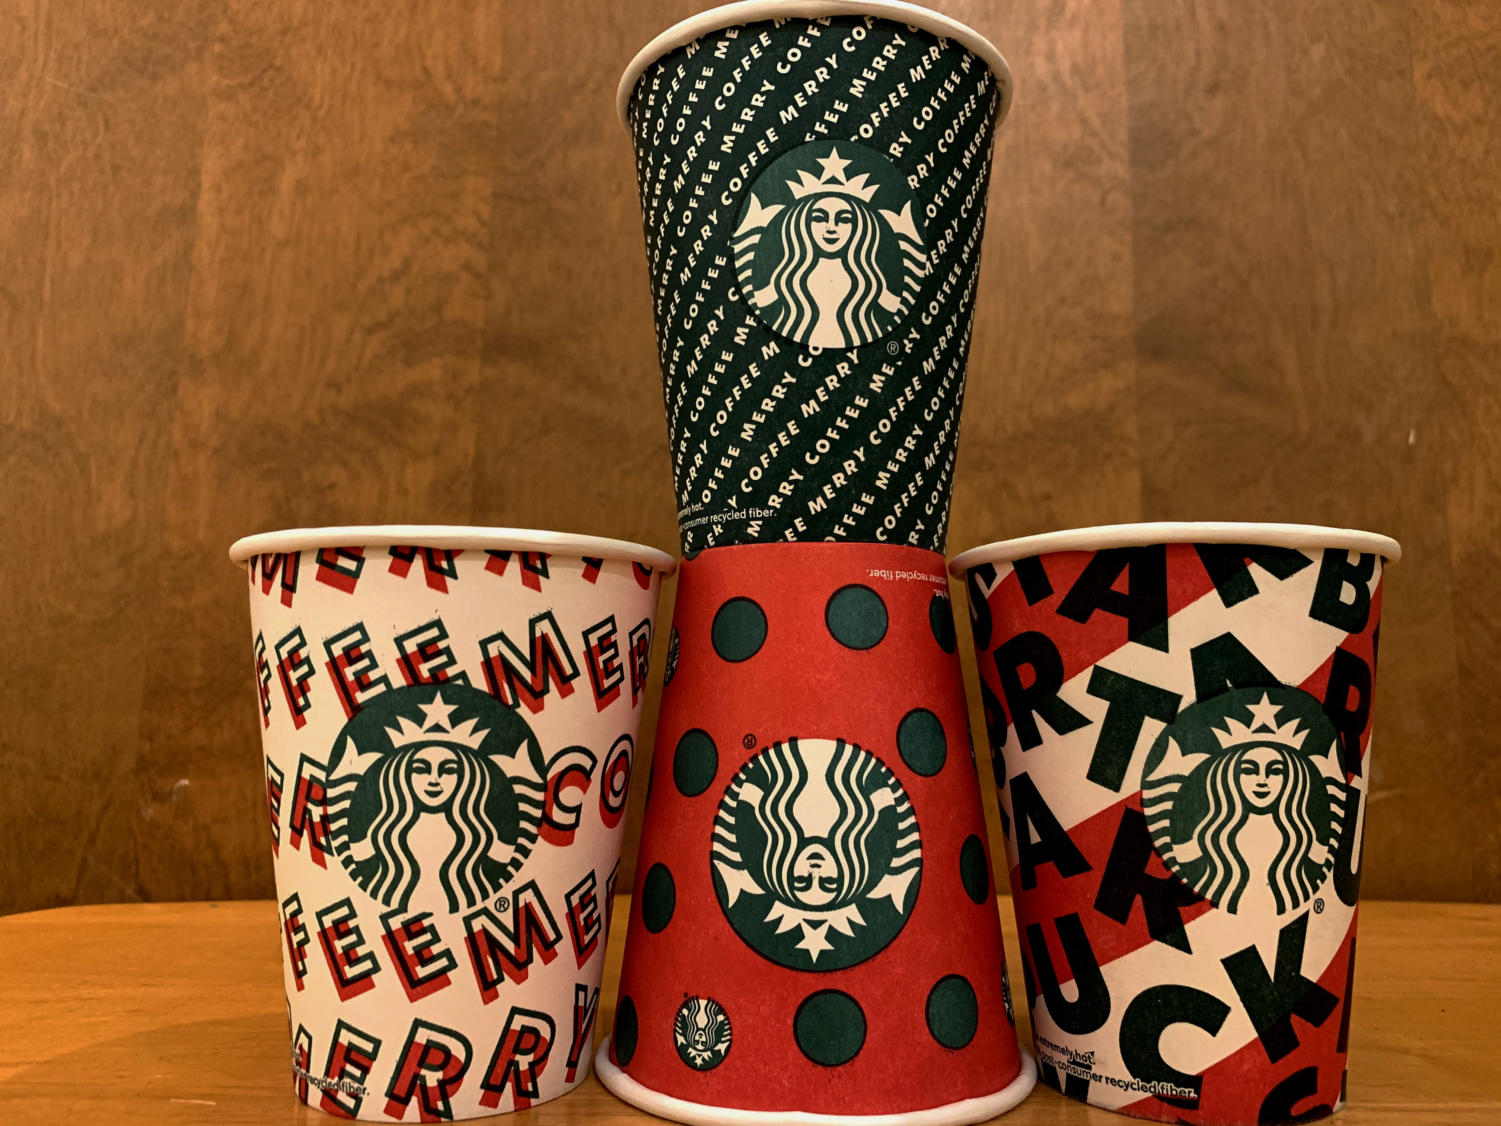 """Bold patterns grace the Starbucks cups of the 2019 holiday season.  According to Jen Quotson, vice president of Starbucks Creative, the cups are meant to represent """"a gift to Starbucks's partners and customers."""""""